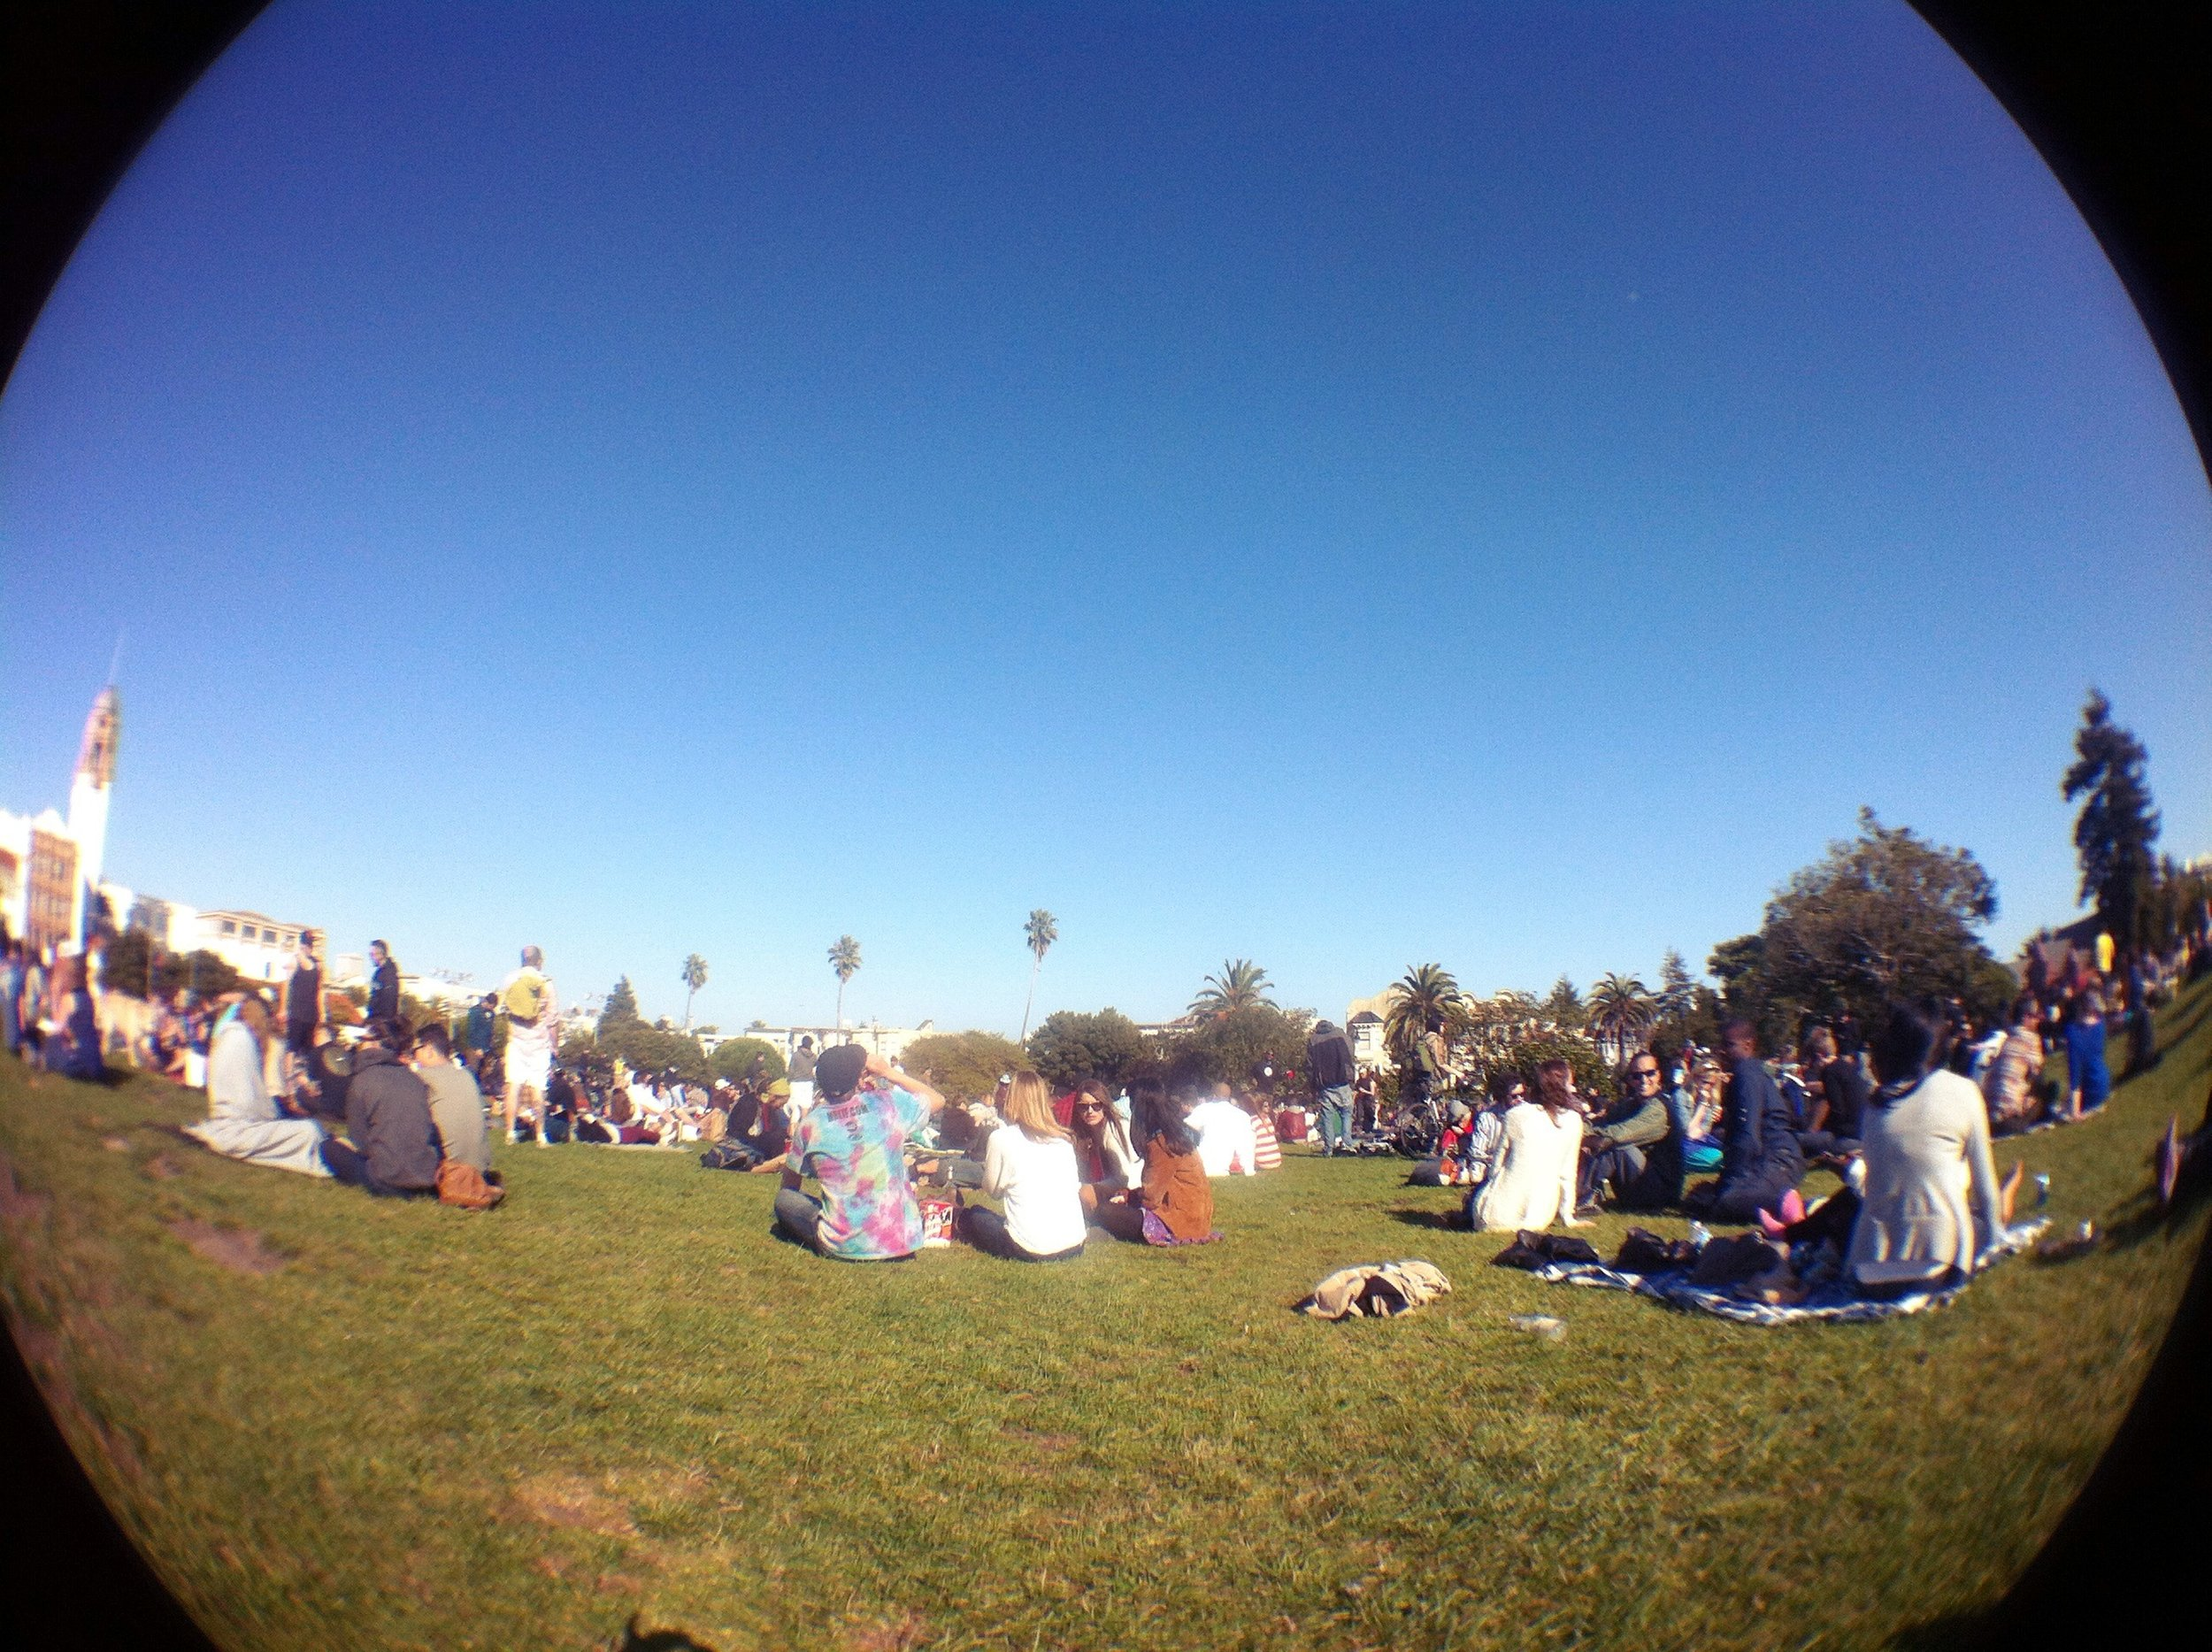 Dolores Park on a Sunday